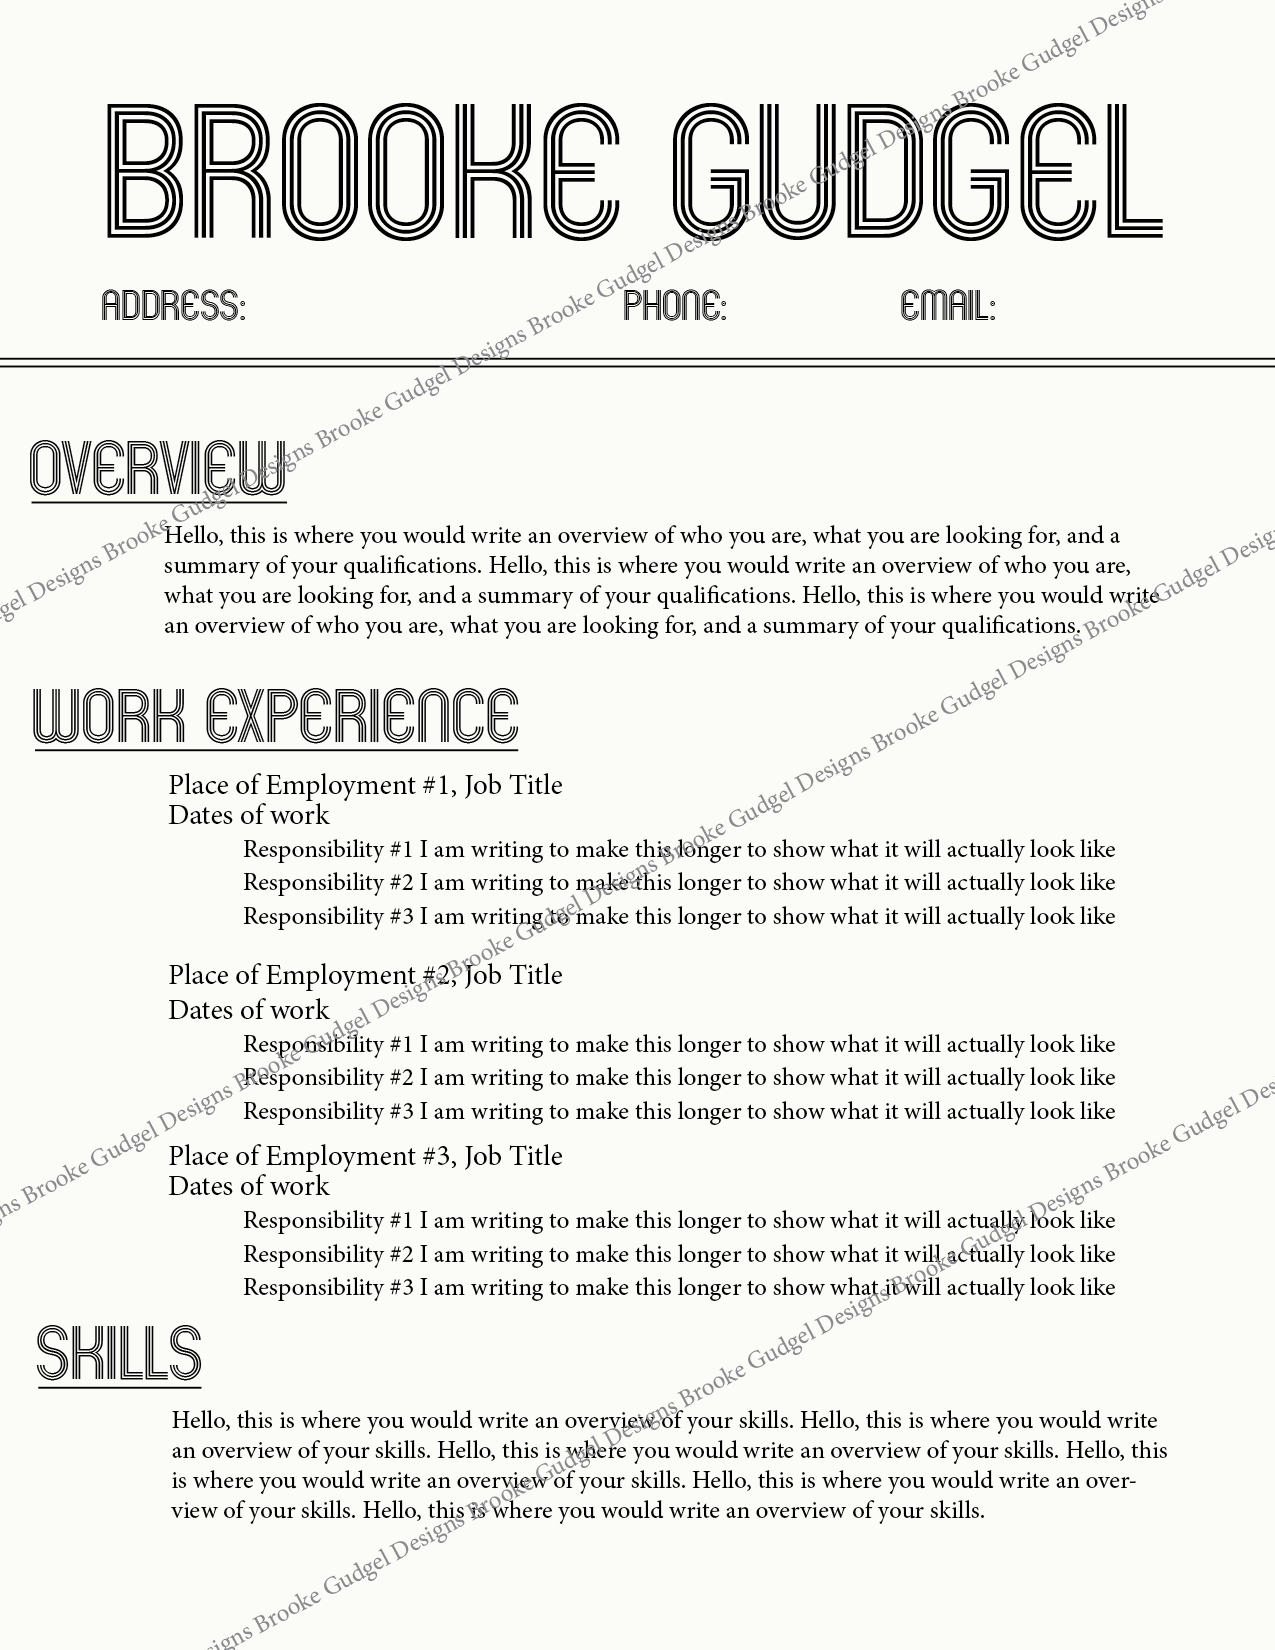 Template For A Resume Retro Resume Contact Brookegudgelgmail #rush #sorority